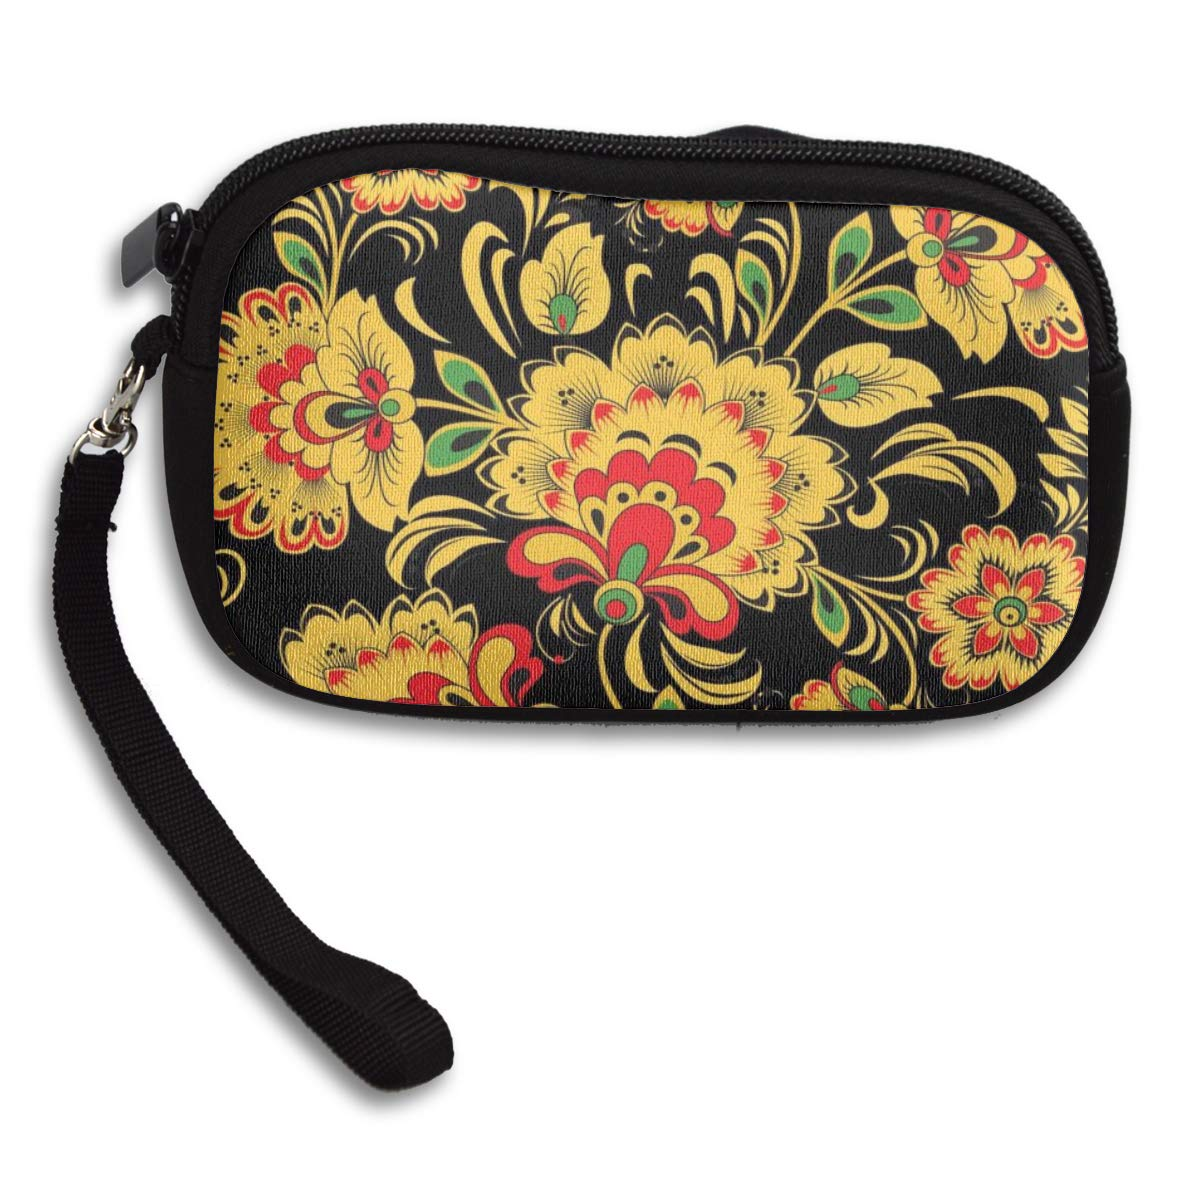 Coin Purse Dark Khokhloma Hohloma Black Coin Pouch With Zipper,Make Up Bag,Wallet Bag Change Pouch Key Holder